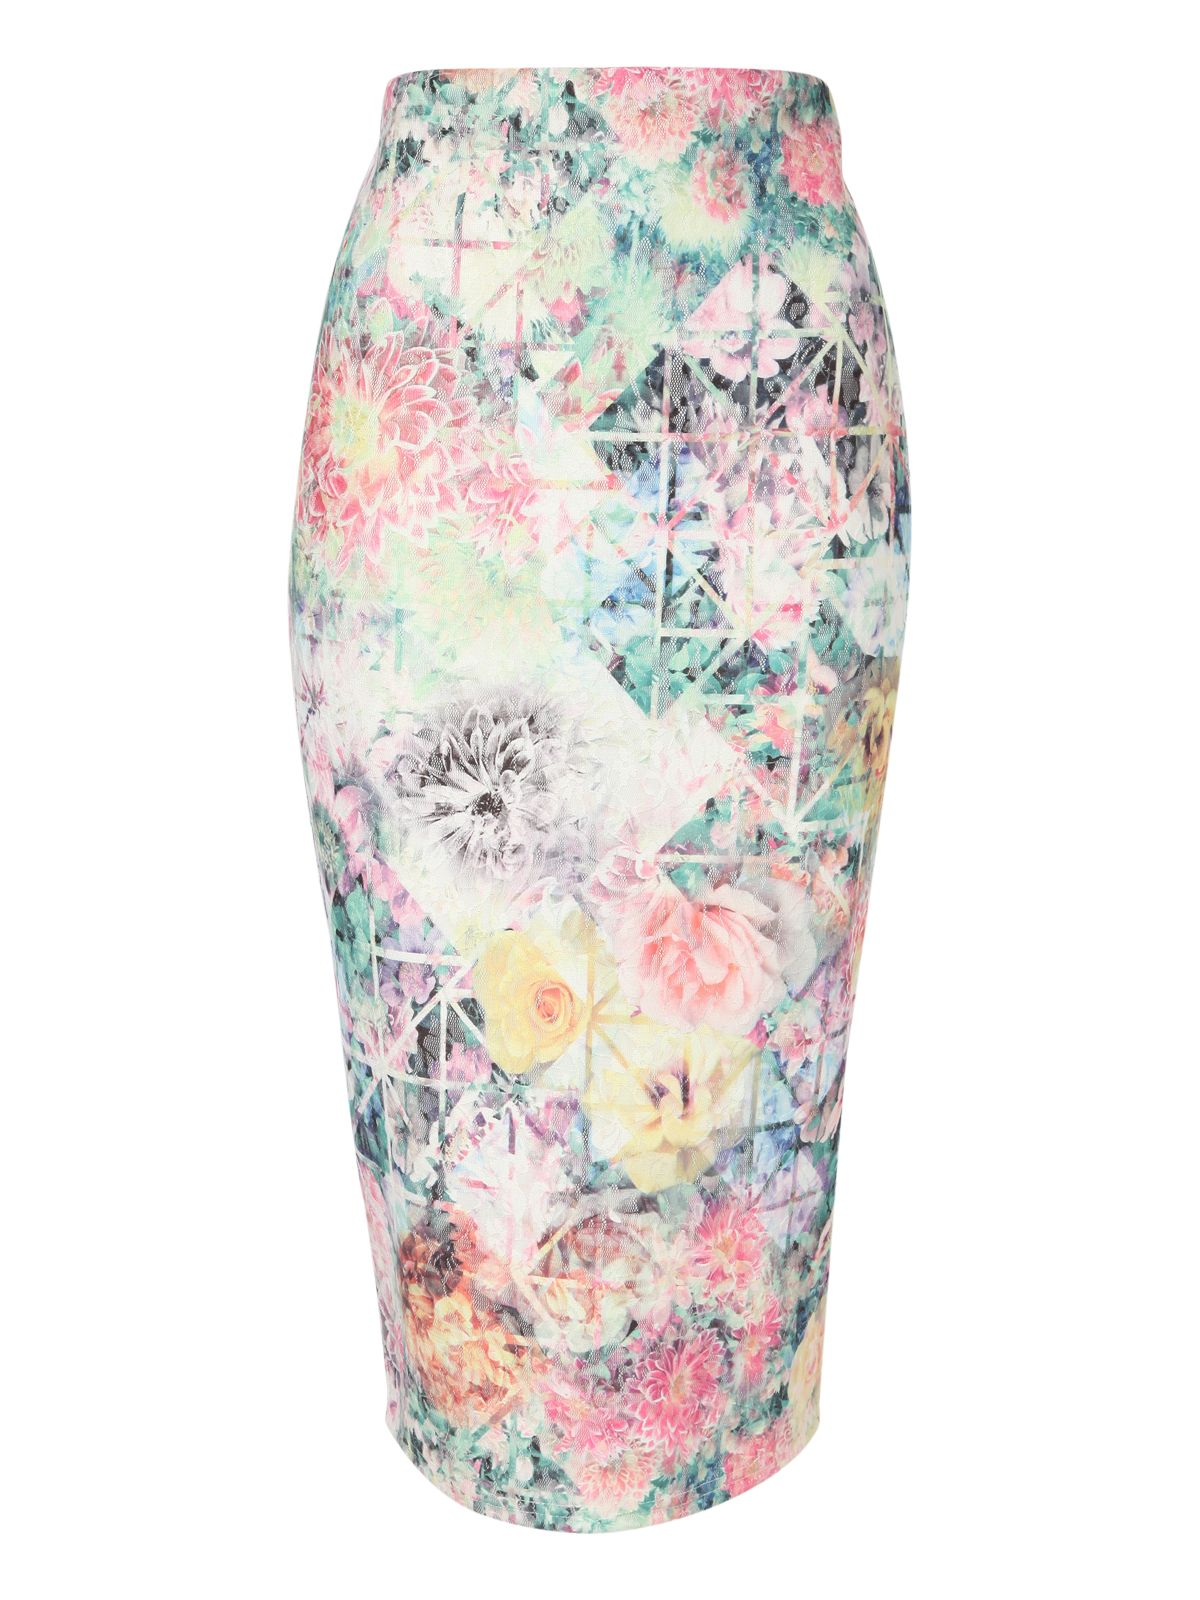 Floral print lace pencil skirt